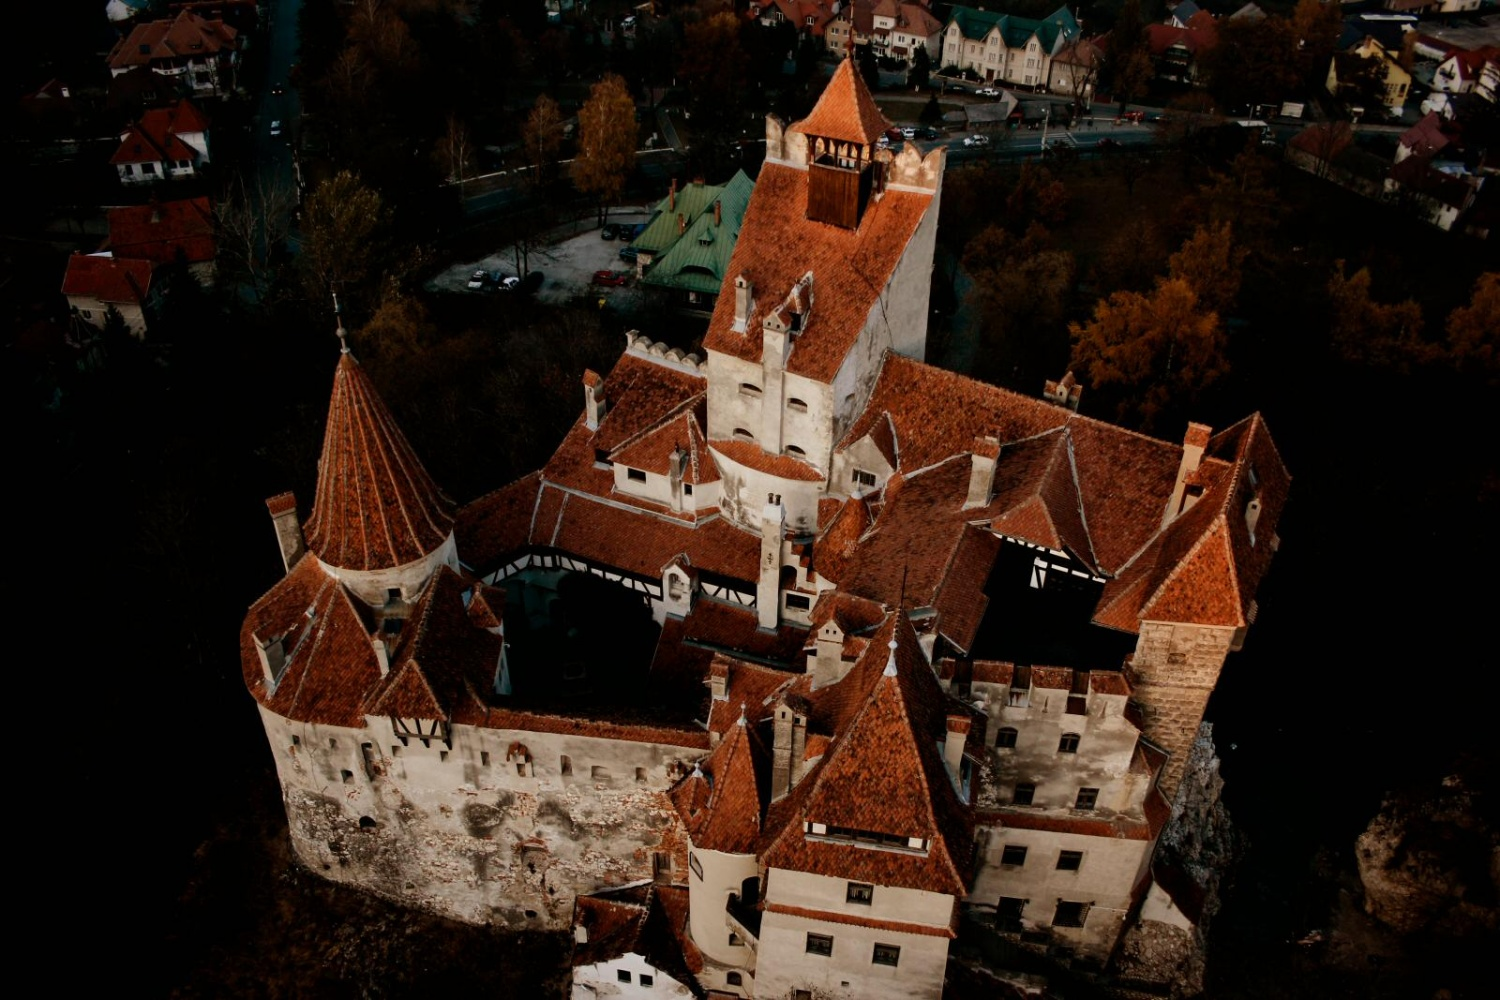 Visitors in 'Dracula Castle' in Romania Receive COVID-19 Vaccine Instead of Vampire Bites in an Effort to Boost Vaccination Drive